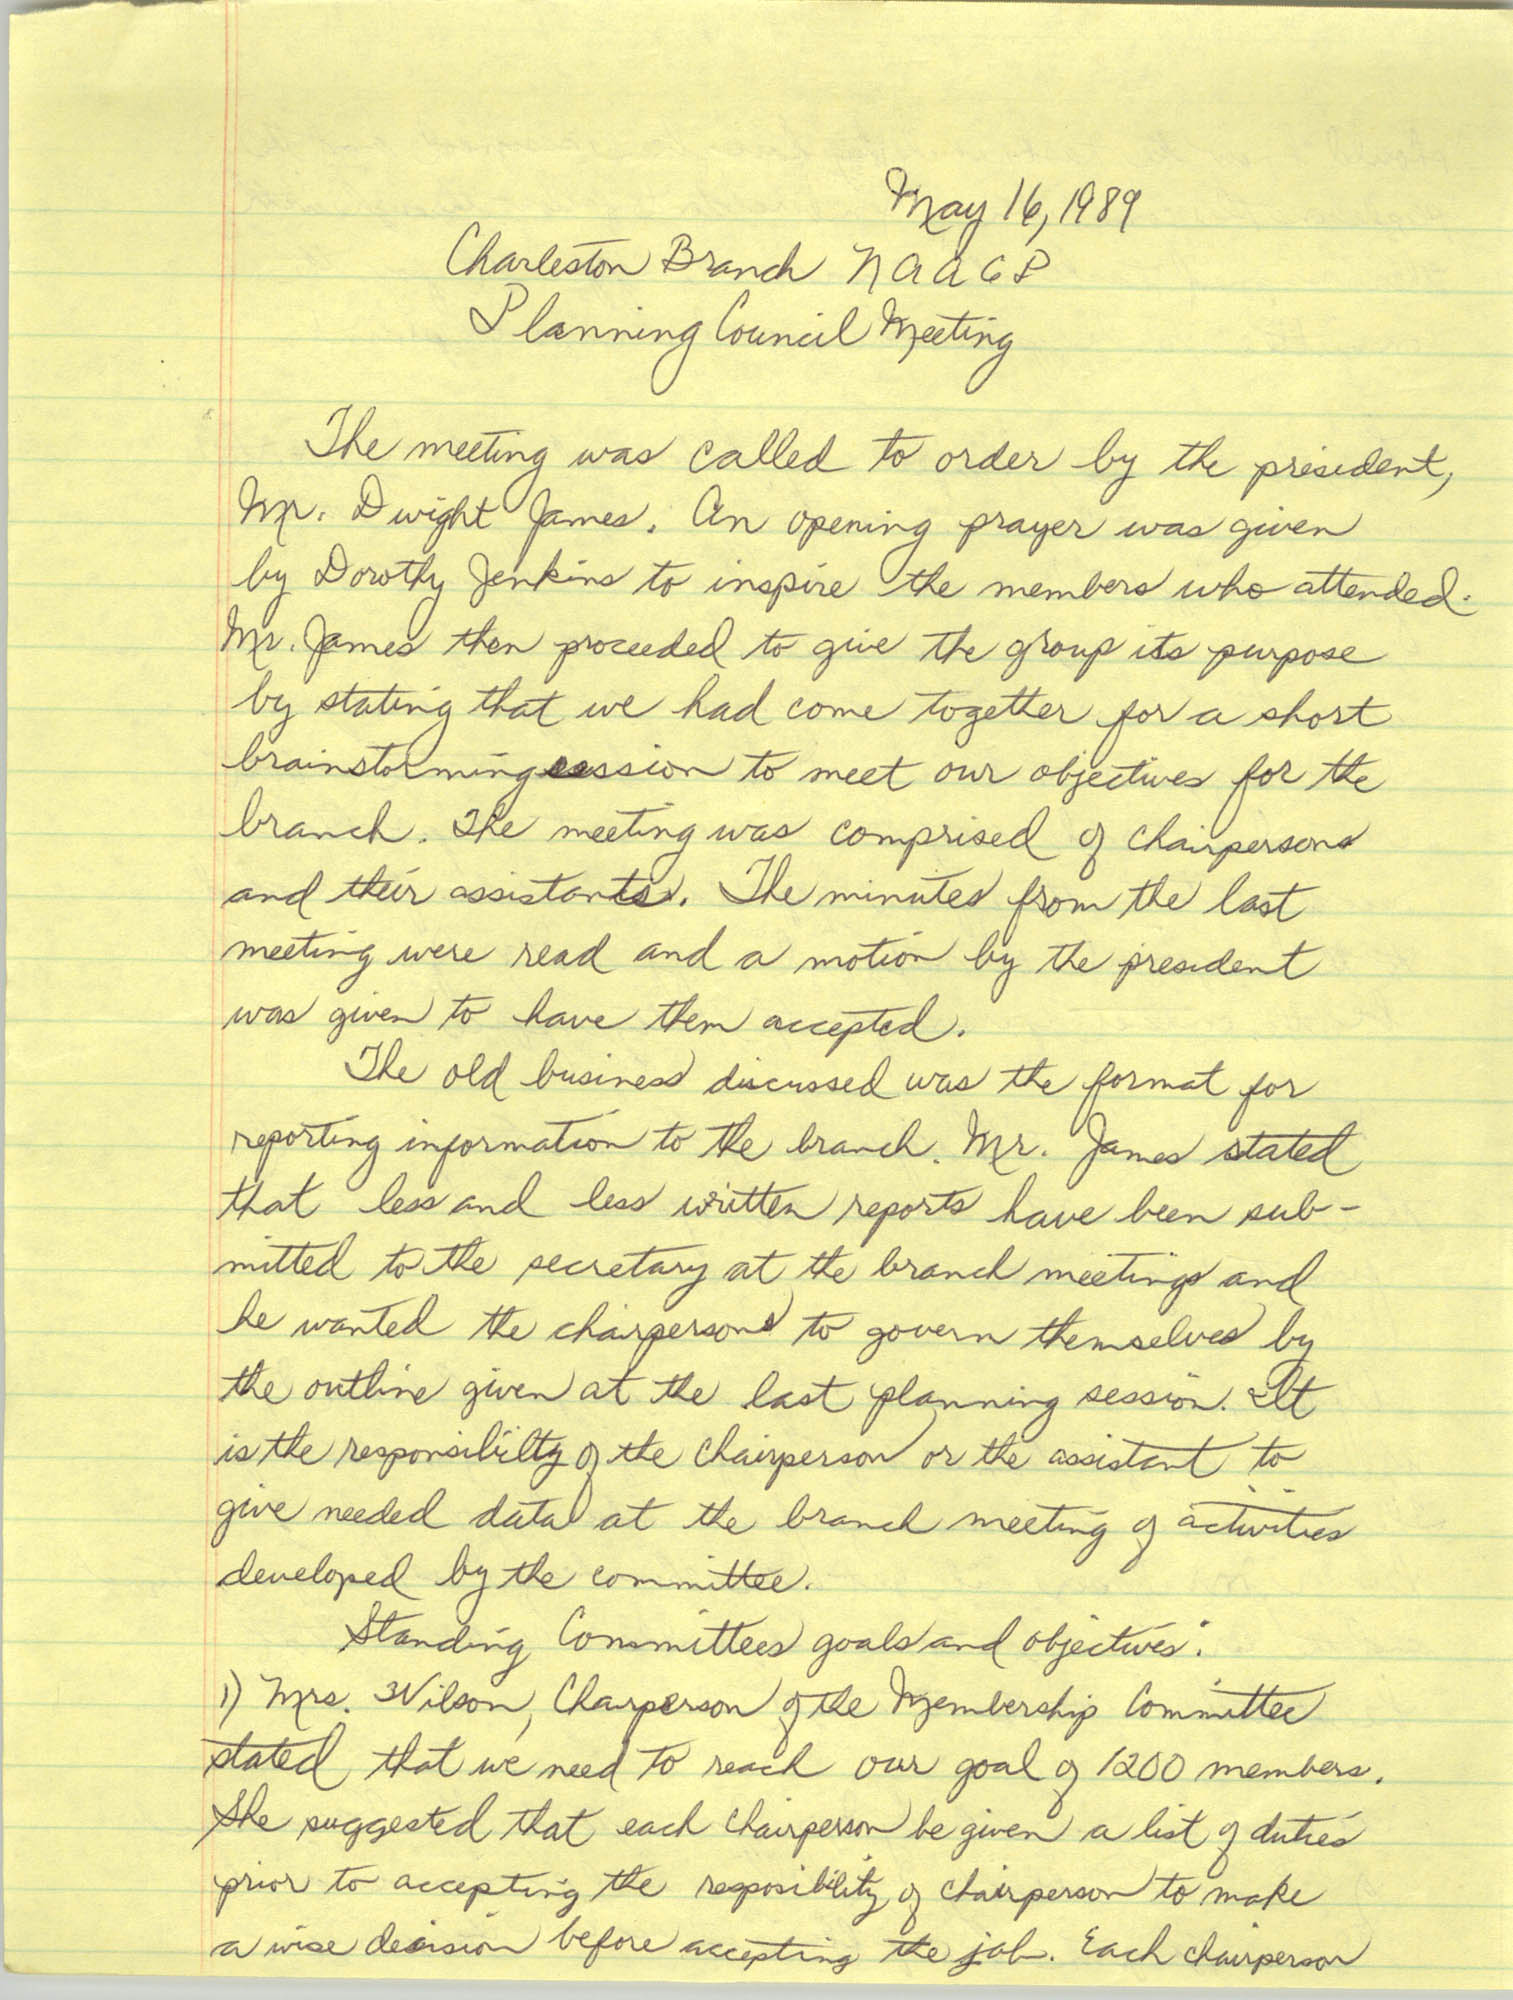 Minutes, Charleston Branch of the NAACP, Planning Council Meeting, May 16, 1989